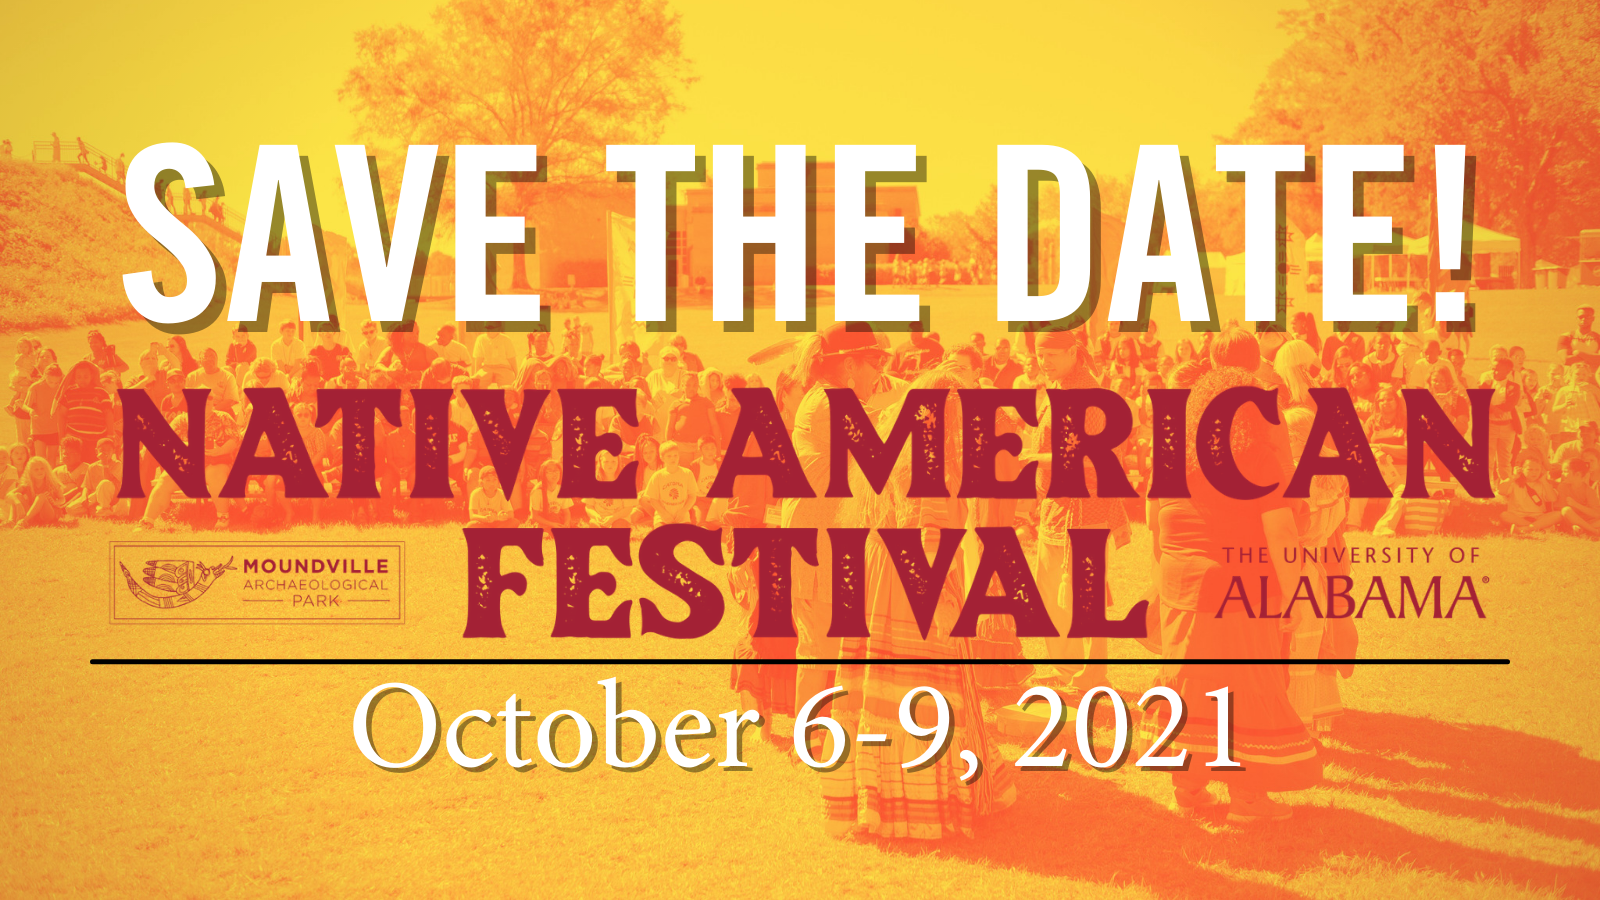 Save the Date Native American Festival October 6-9 2021